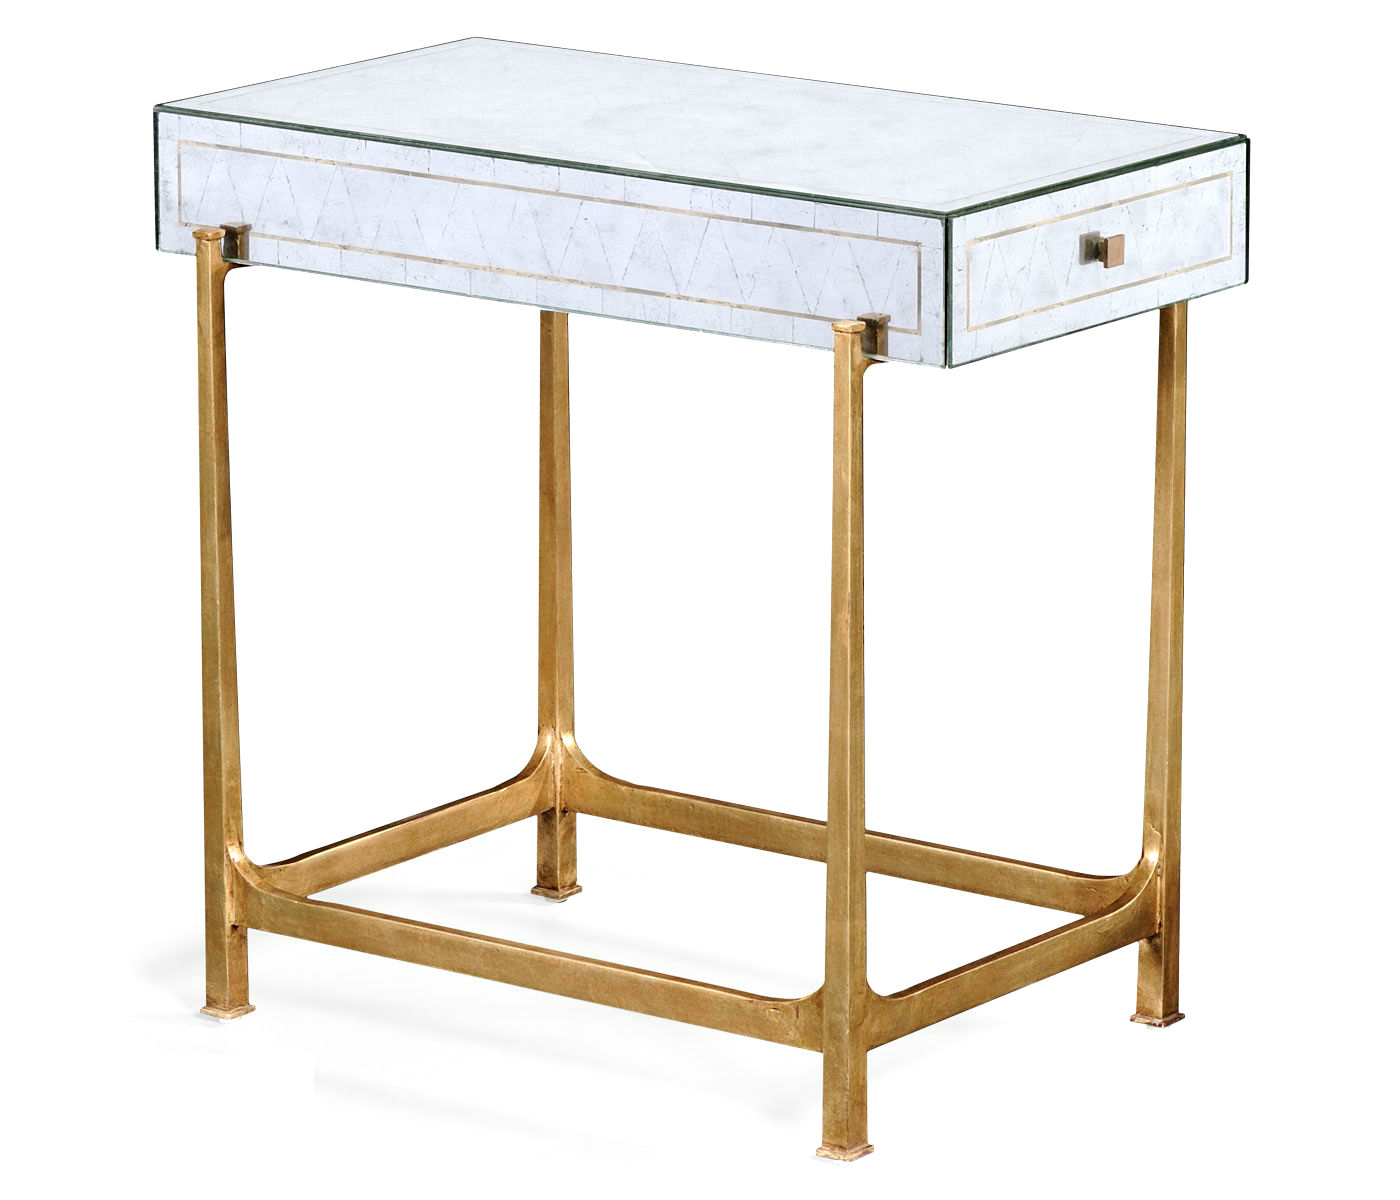 eglomise side table end accent tables high tall elegant mirrored distressed gold gilded partner coffee console available hospitality residential clamp lamp set lamps black